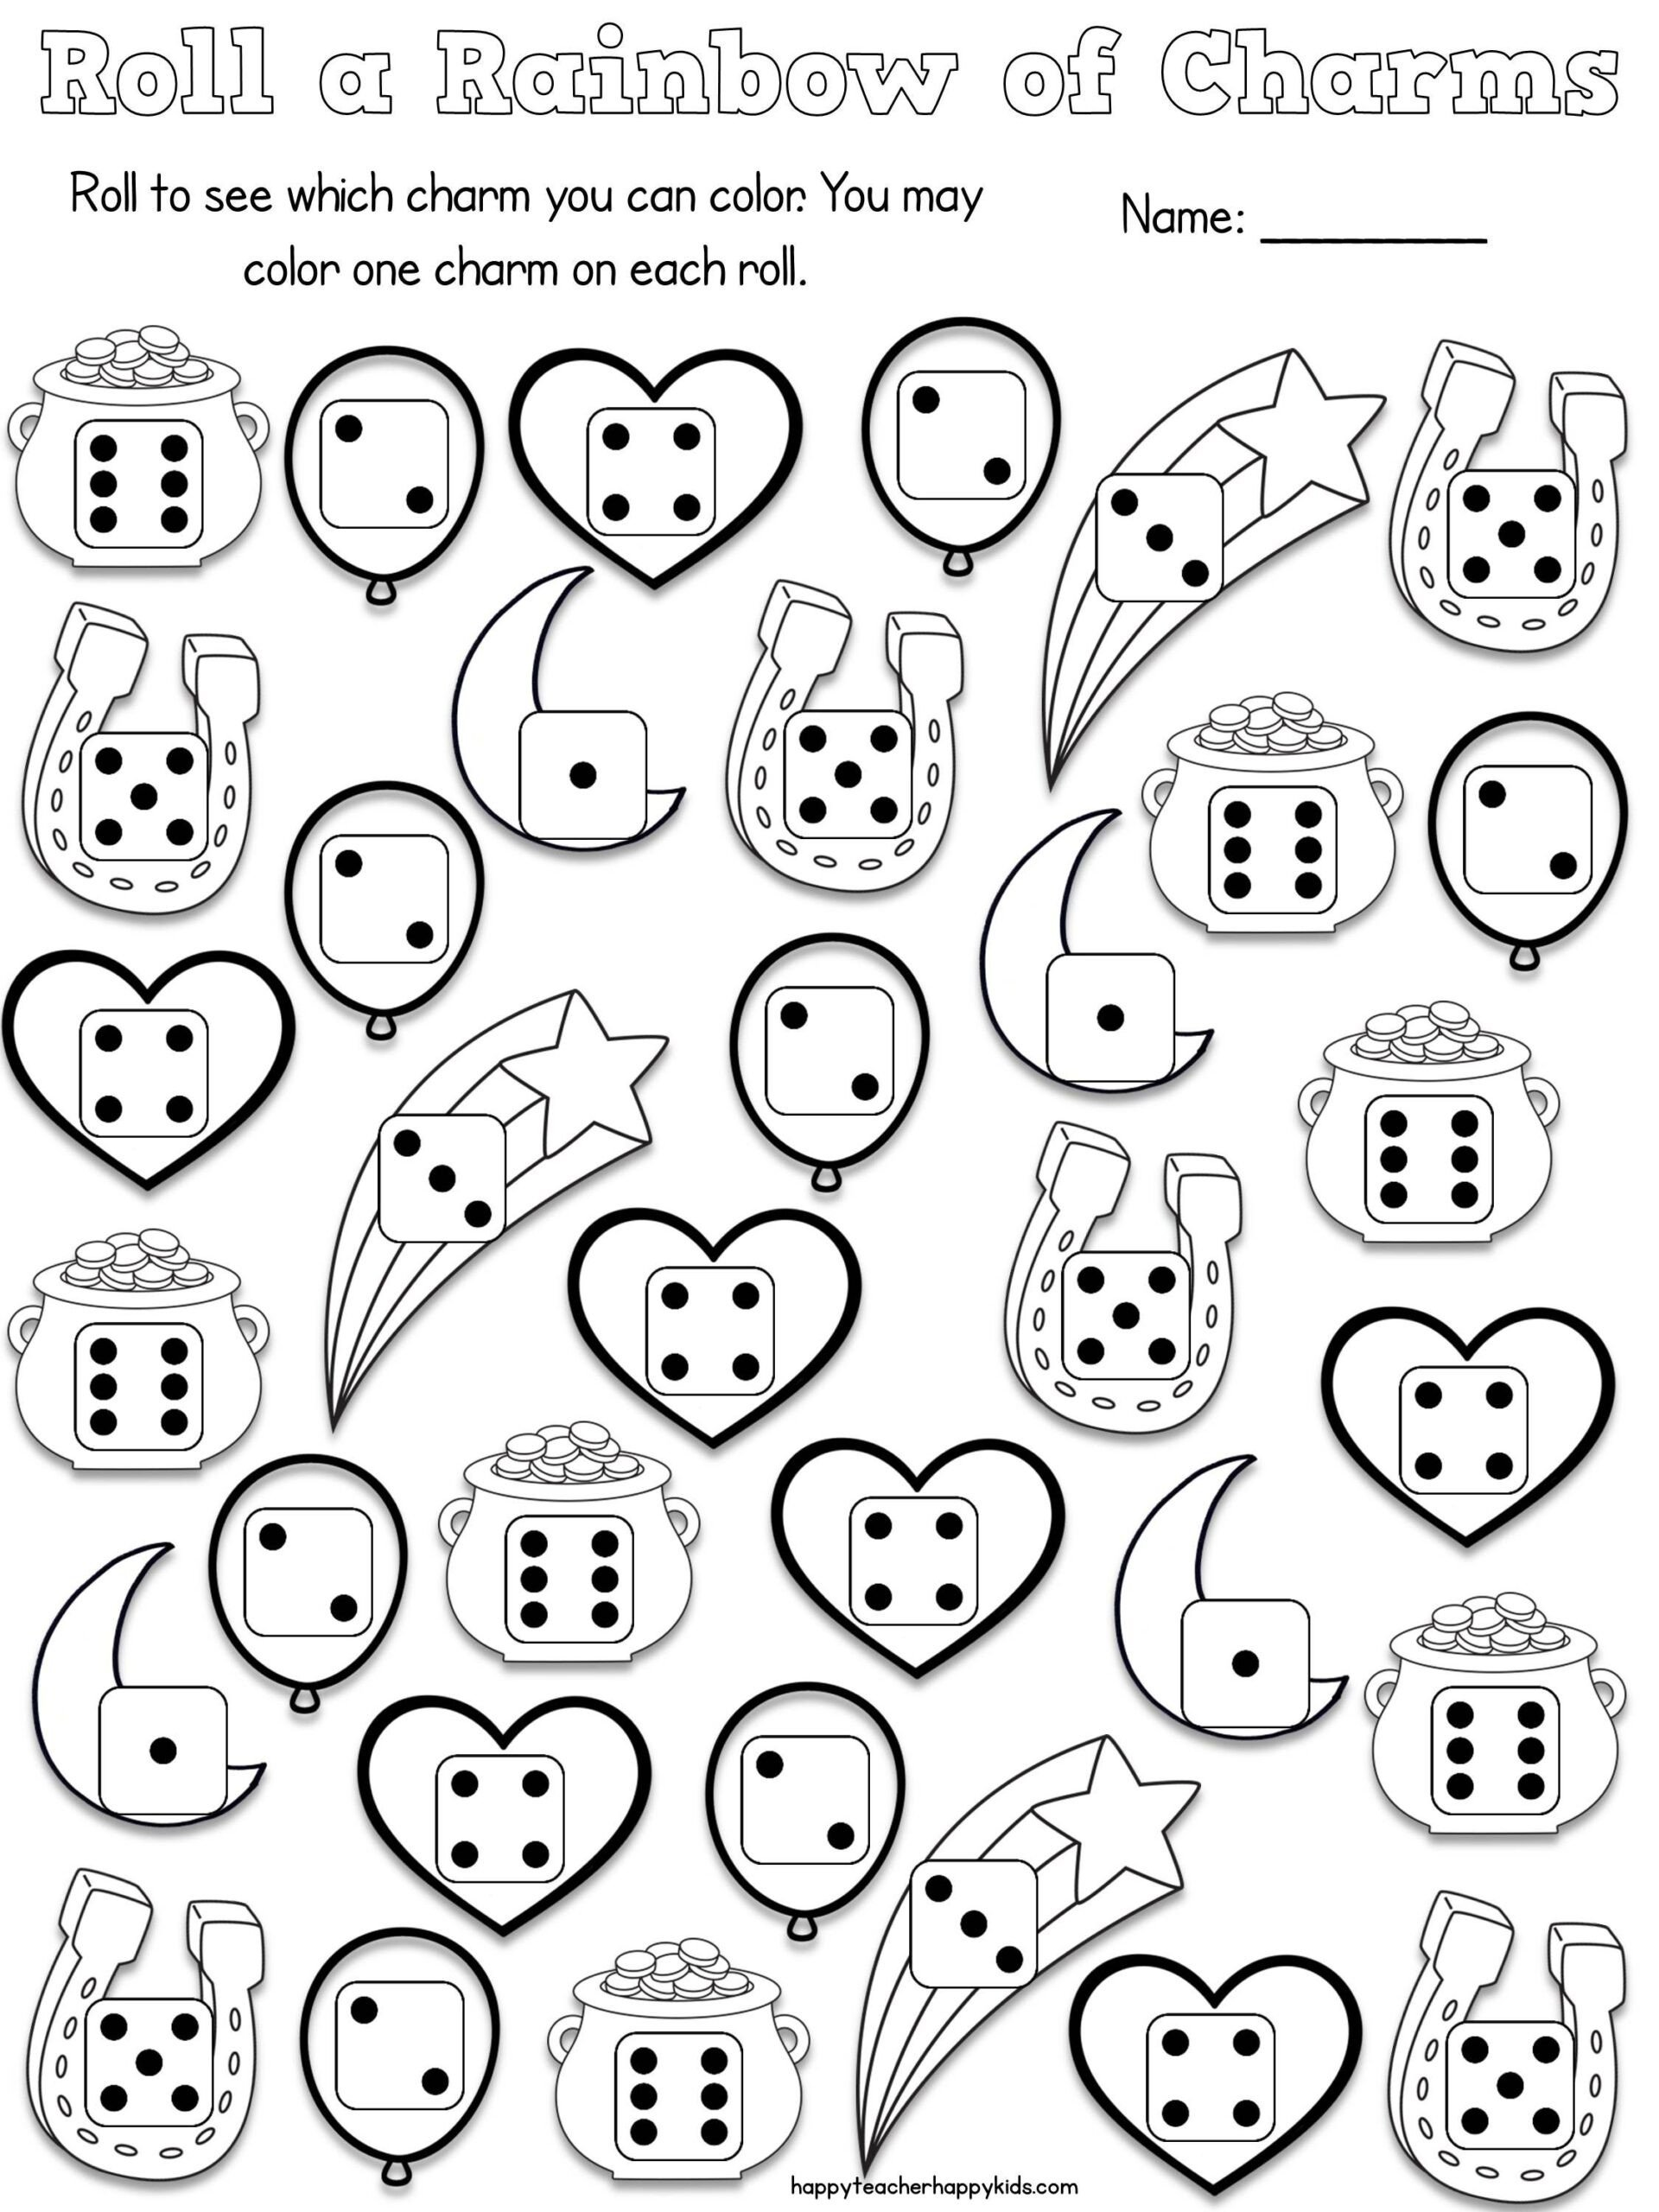 Number Recognition Worksheets 1 20 Worksheets Free Lucky Charms Math More with Charm